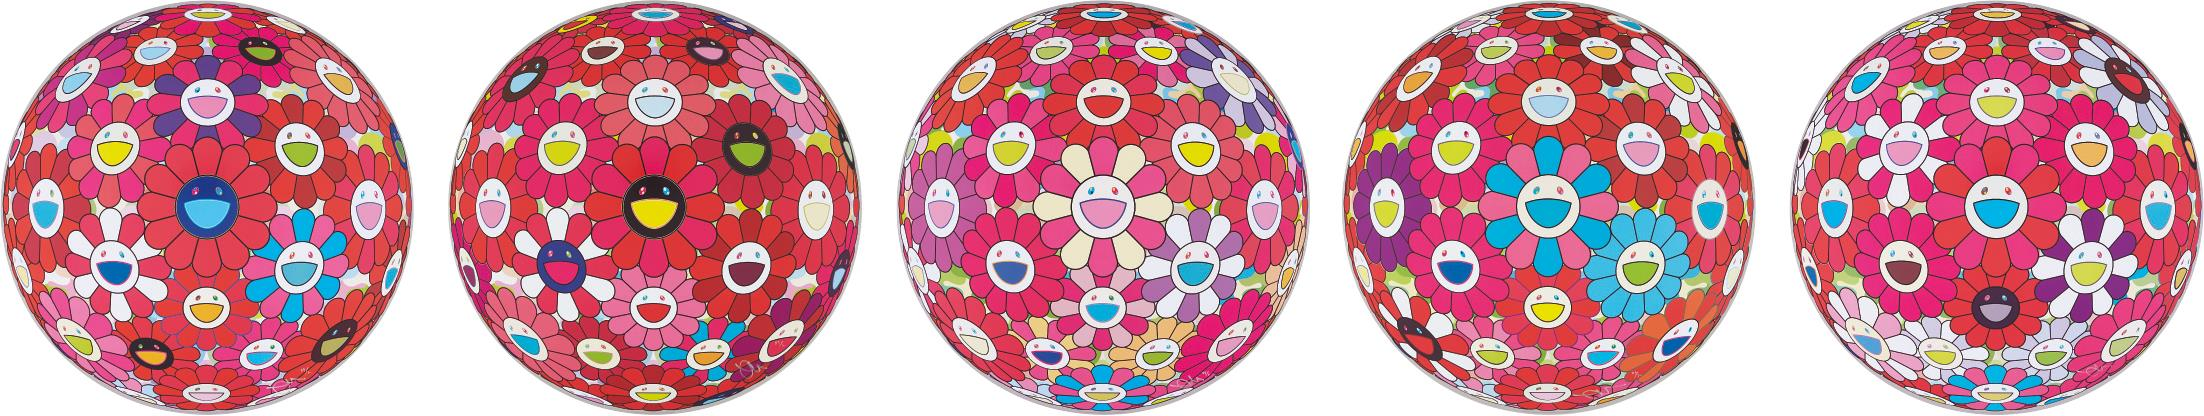 Takashi Murakami-Flower Ball (3D)-Turn Red!; Hey! You! Do You Feel What I Feel?; Flower Ball (3D) - Blue, Red; Letter to Picasso; Groping for the Truth-2014